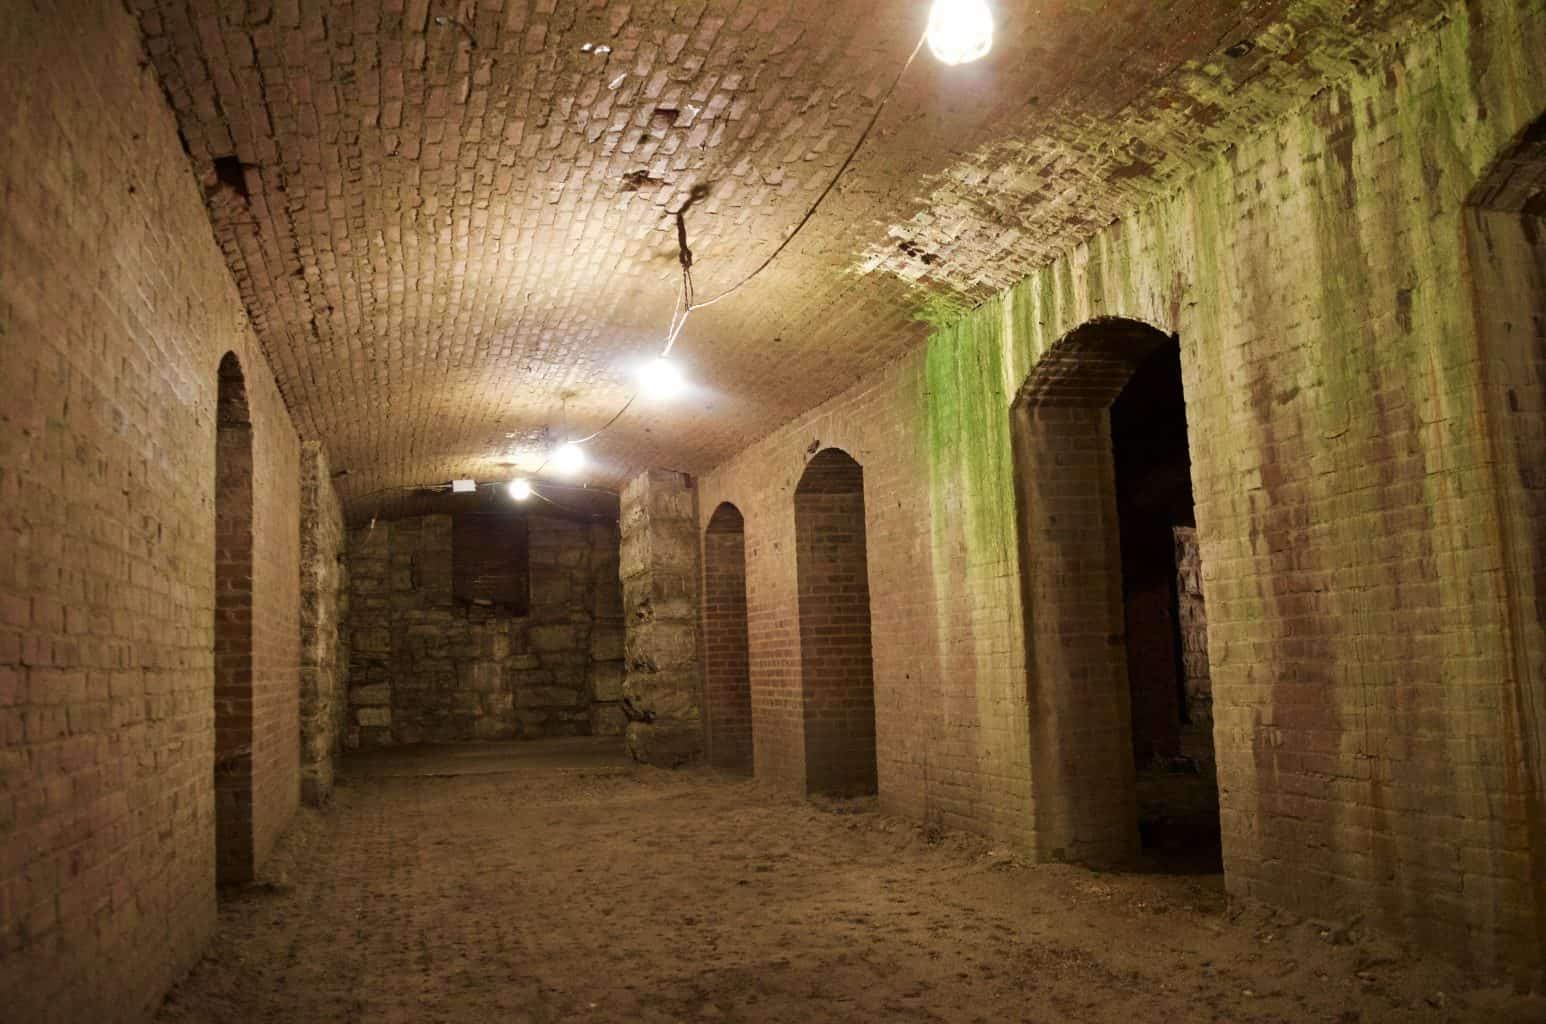 brick Catacombs tunnel Below Indianapolis, Indiana